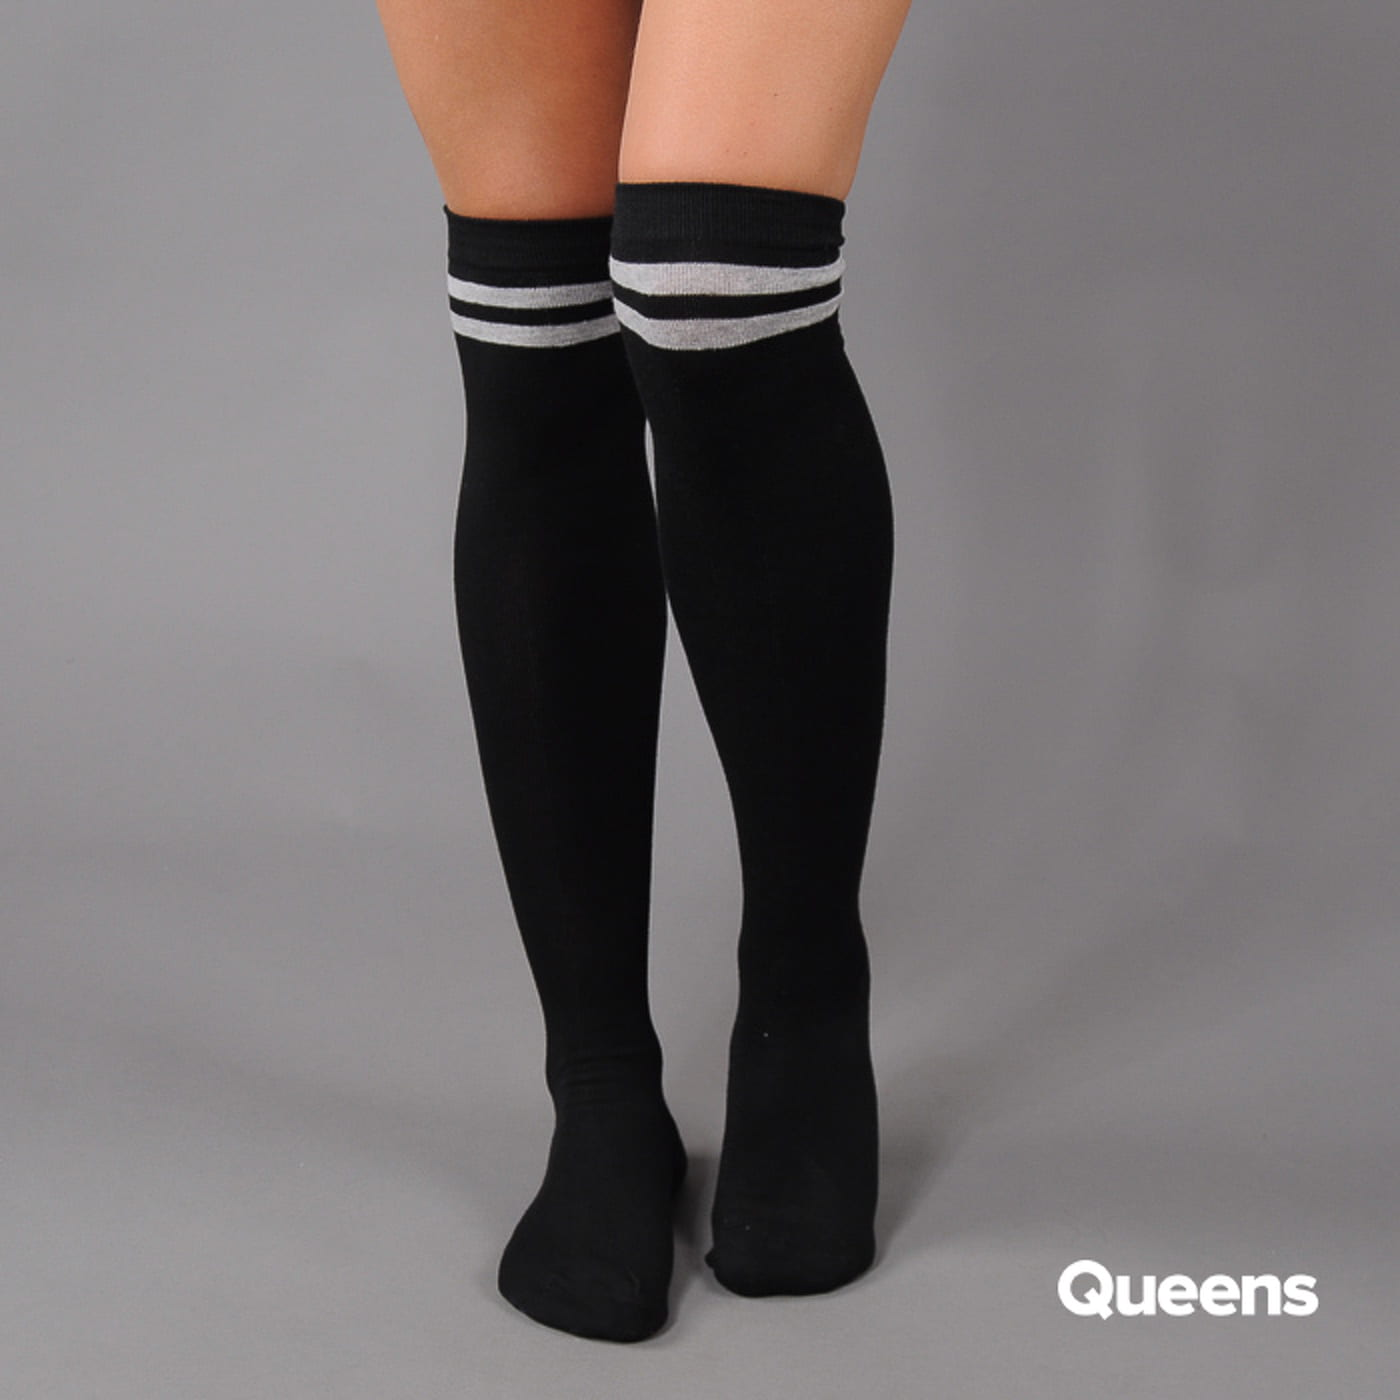 Urban Classics Ladies Overknee Socks 2-Pack čierne / šedé